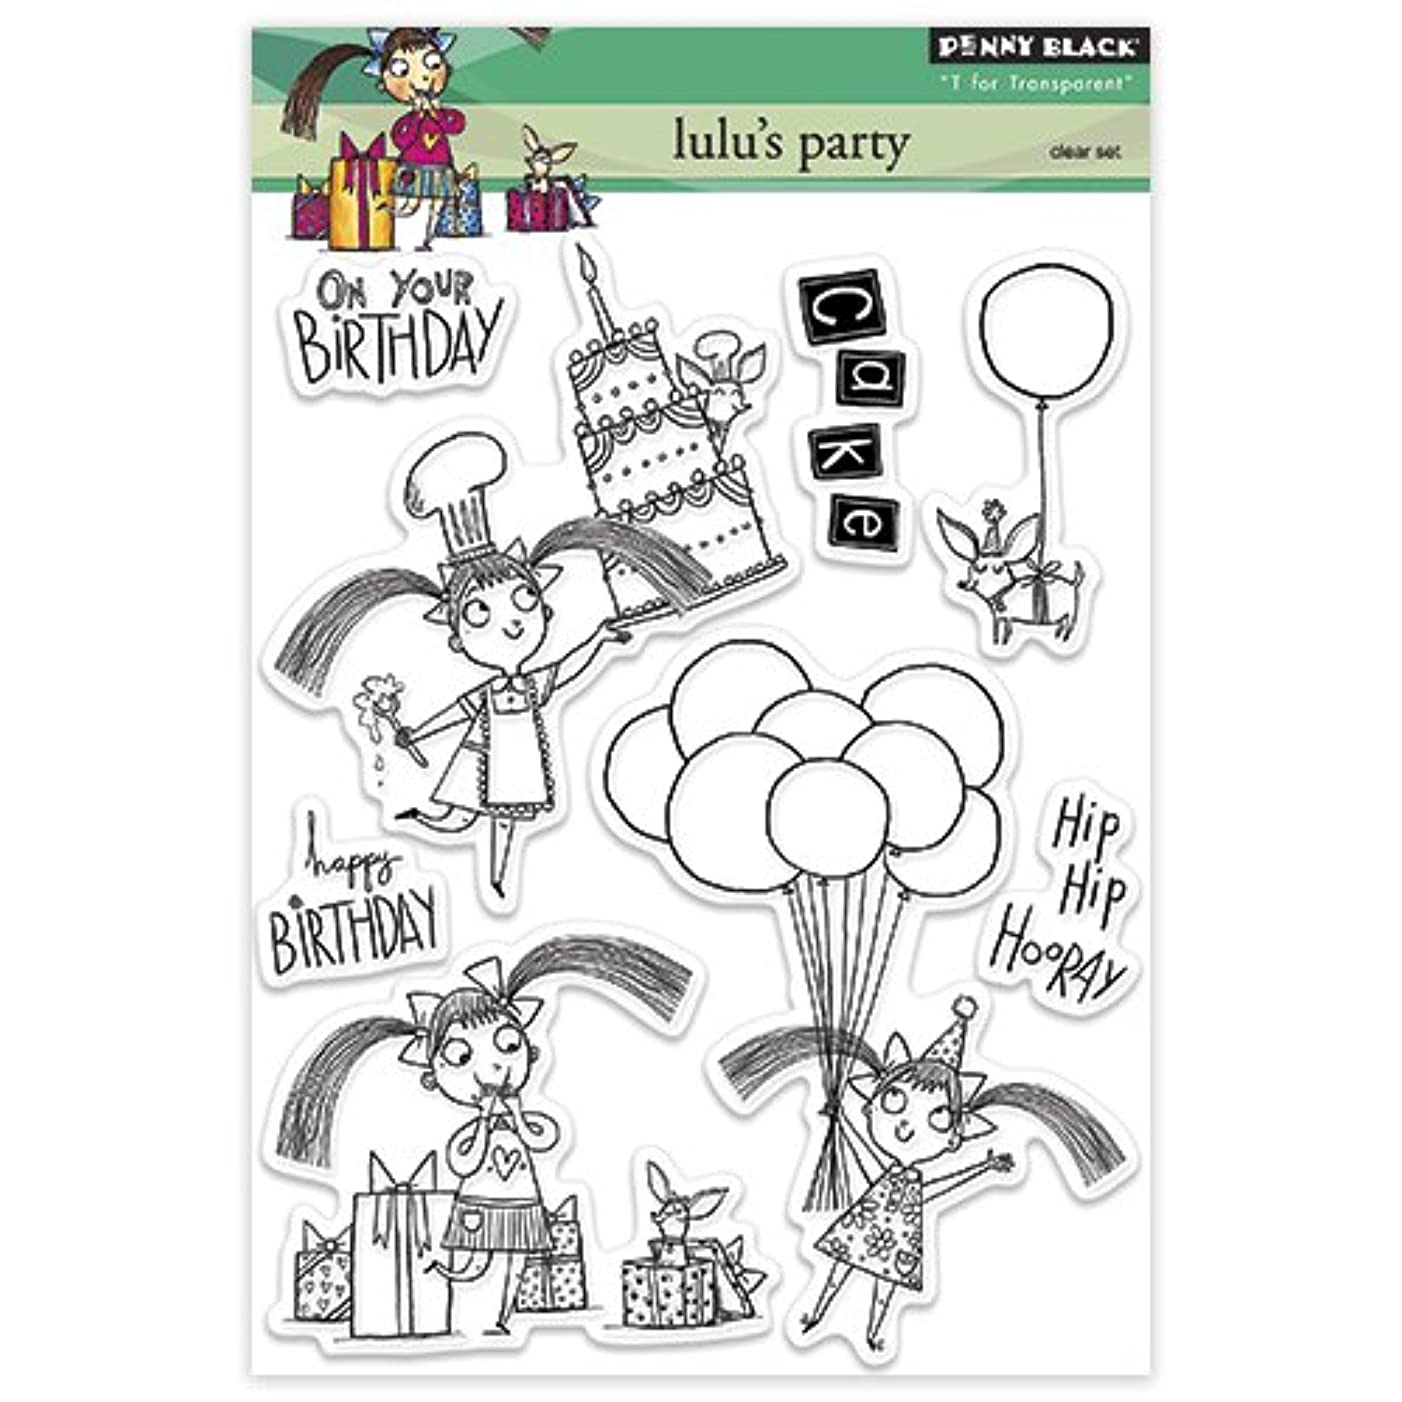 Penny Black Decorative Rubber Stamps, Lulu's Party